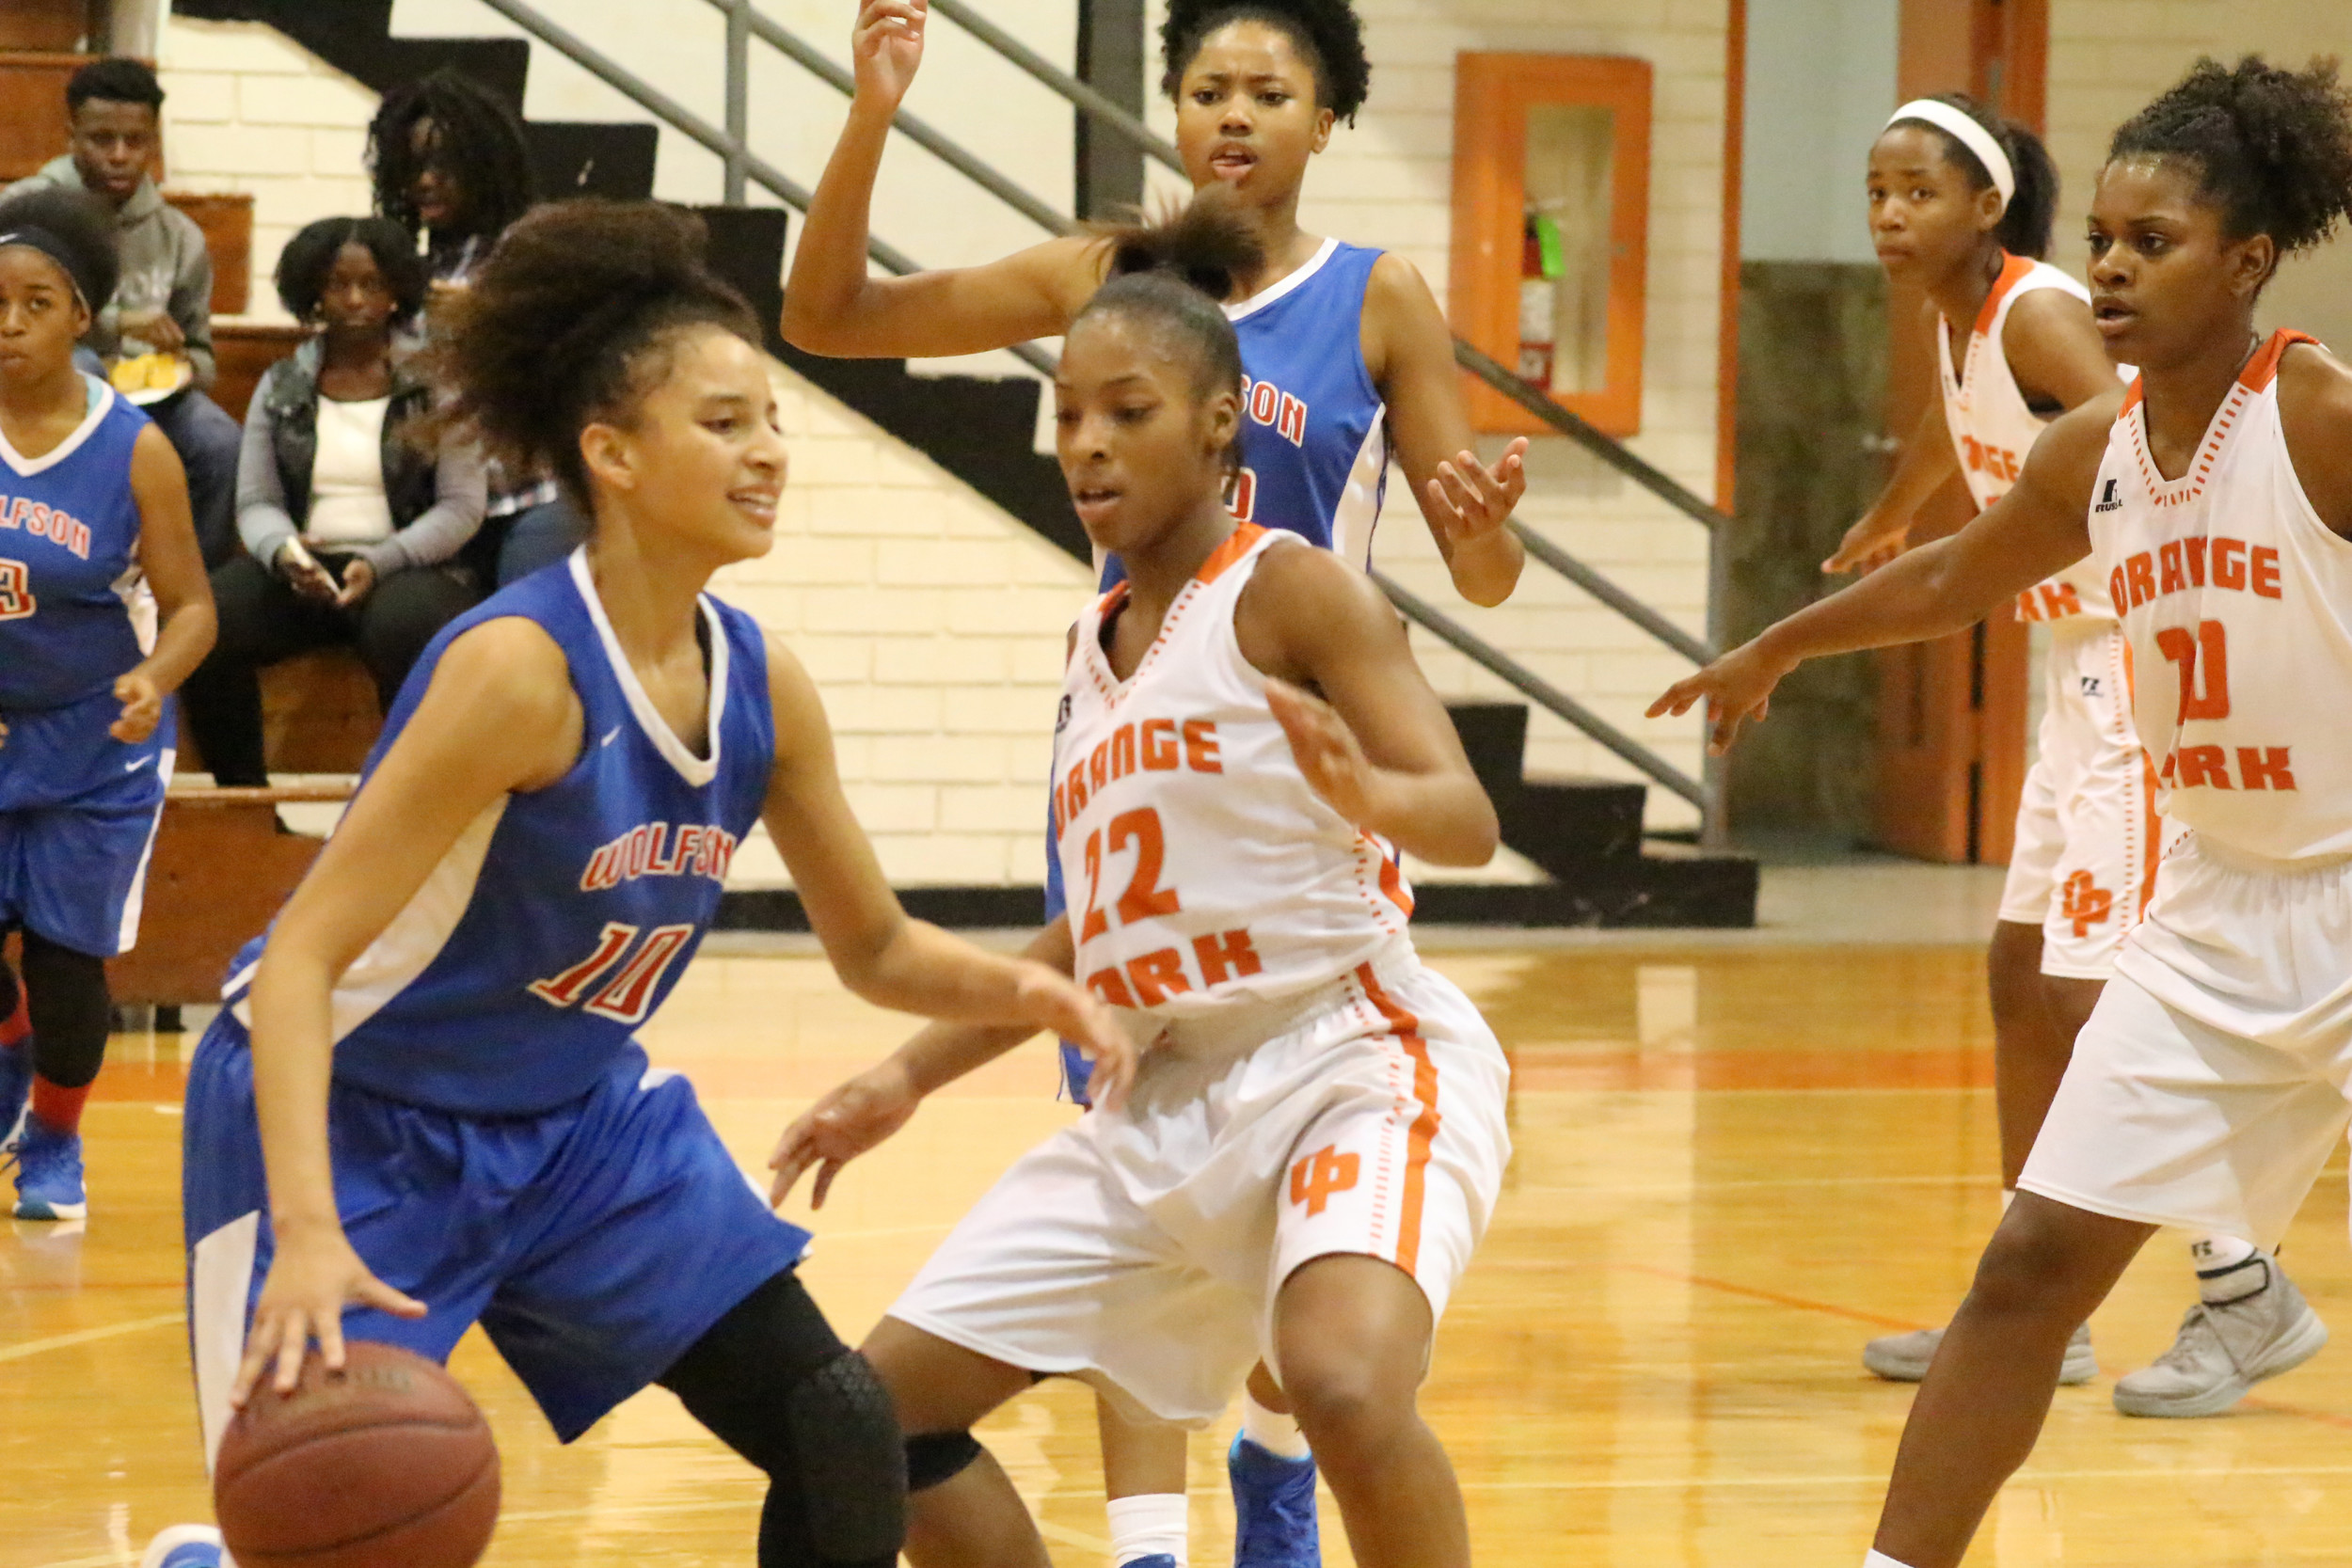 Orange  Park senior guard Maxine Knox has been a steal threat for enemy point guards as the Lady Raiders enter the district 4-5A tournament as top seeded team.